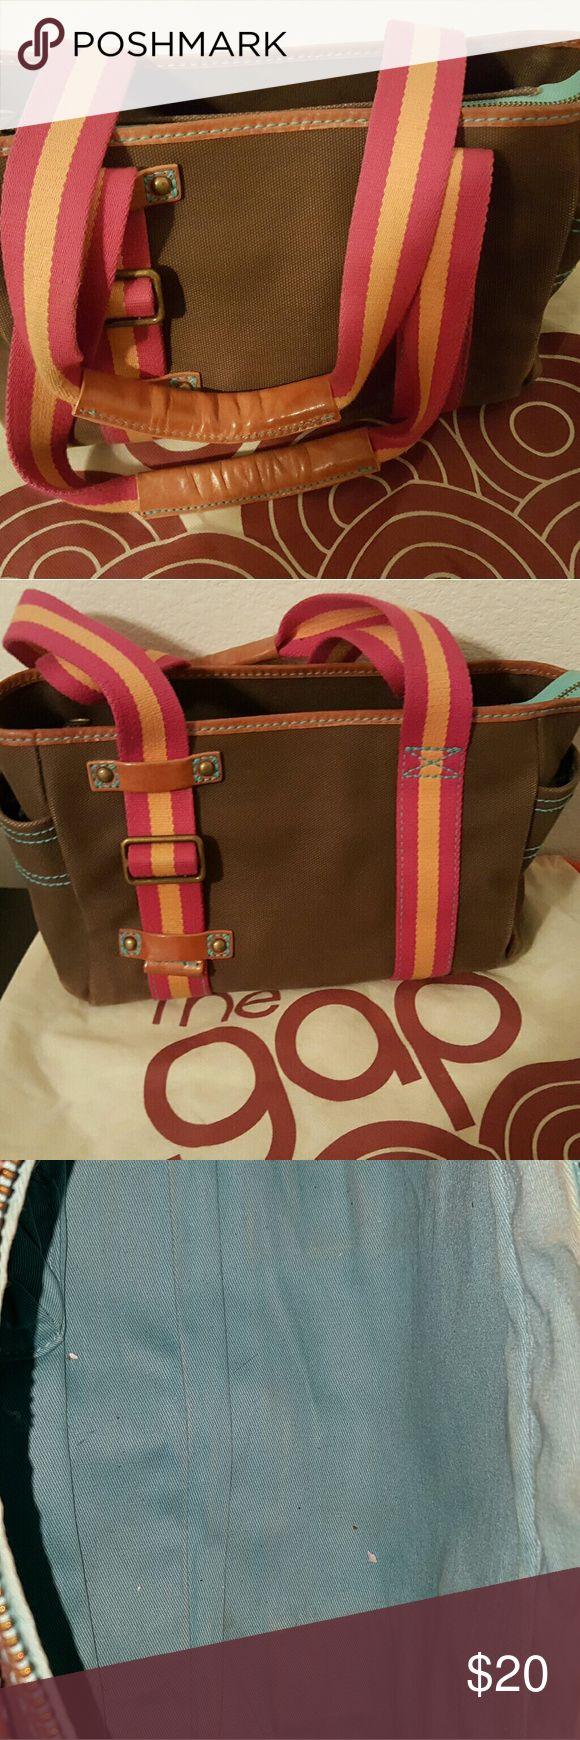 Vintage 1969 Tote from The Gap Canvas type material. Brown with Pink/Orange straps. Interior is turquoise. Slightly used. The corners are a little discolored. Comes with original cloth bag for safe keeping. GAP Bags Shoulder Bags